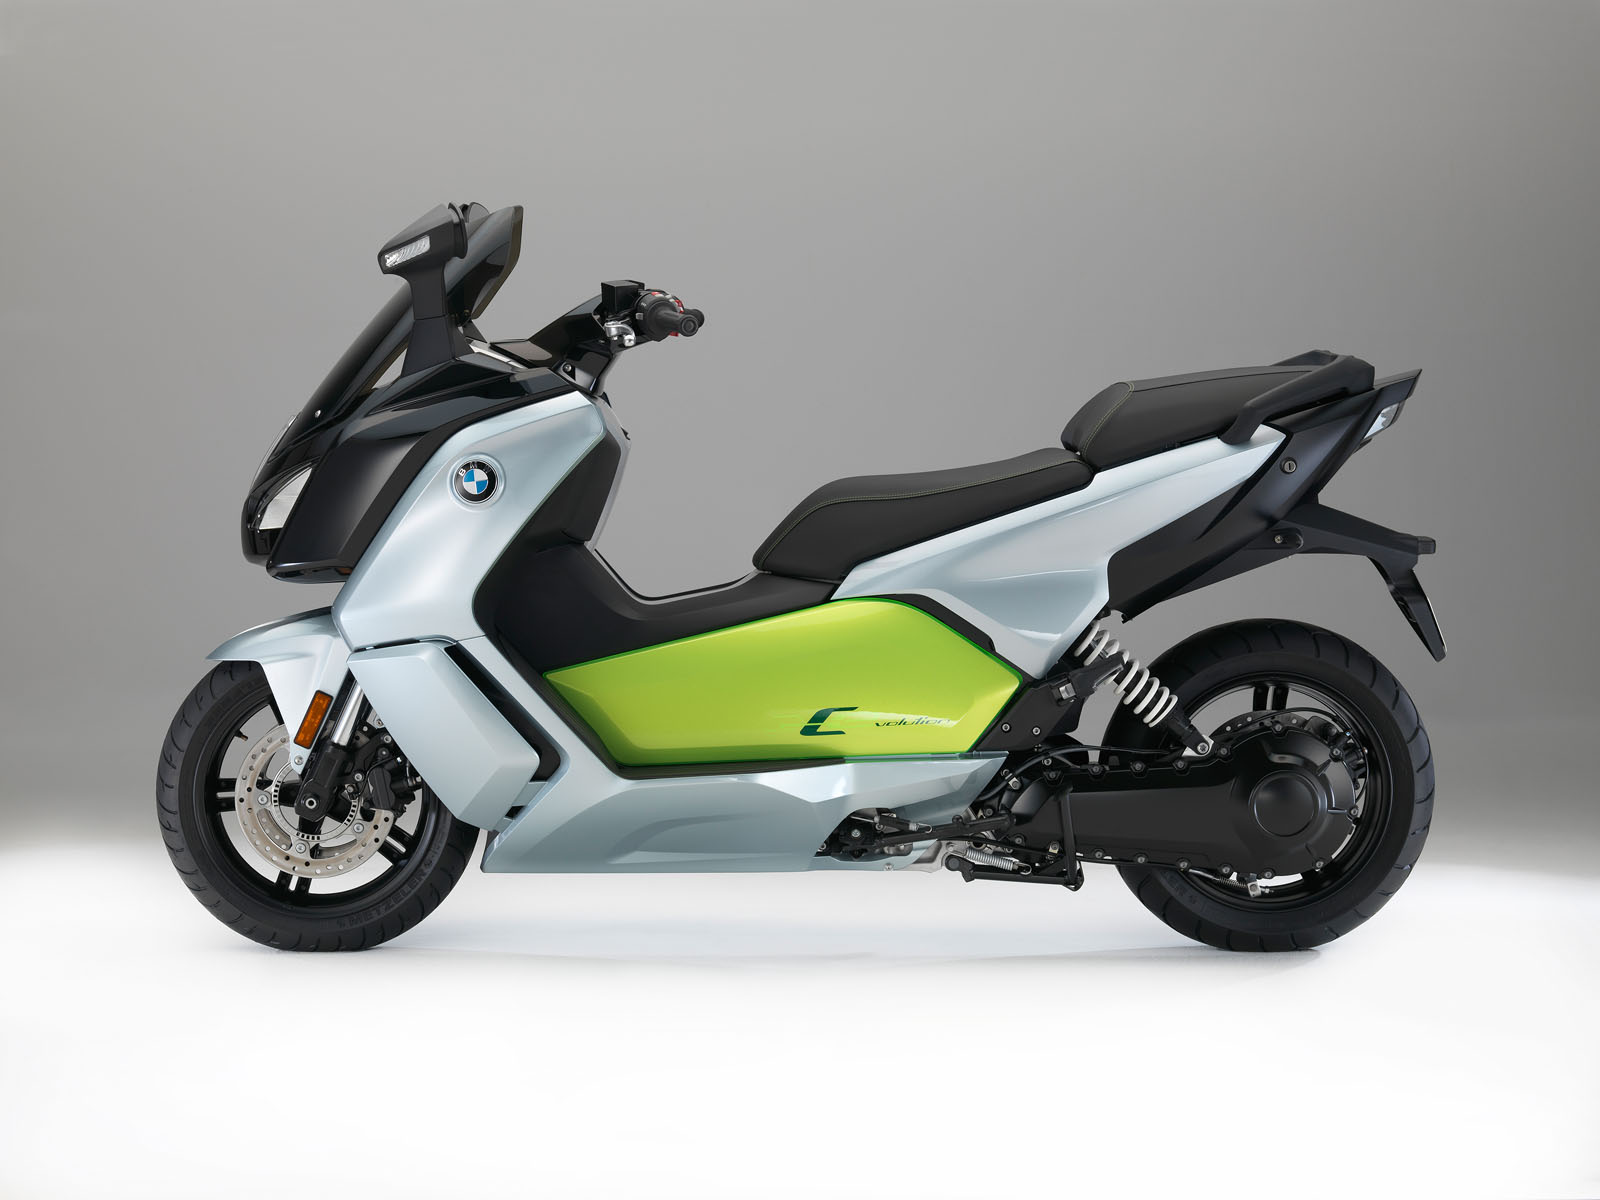 bmw to showcase revised c evolution electric scooter in paris with more juice 66 images. Black Bedroom Furniture Sets. Home Design Ideas